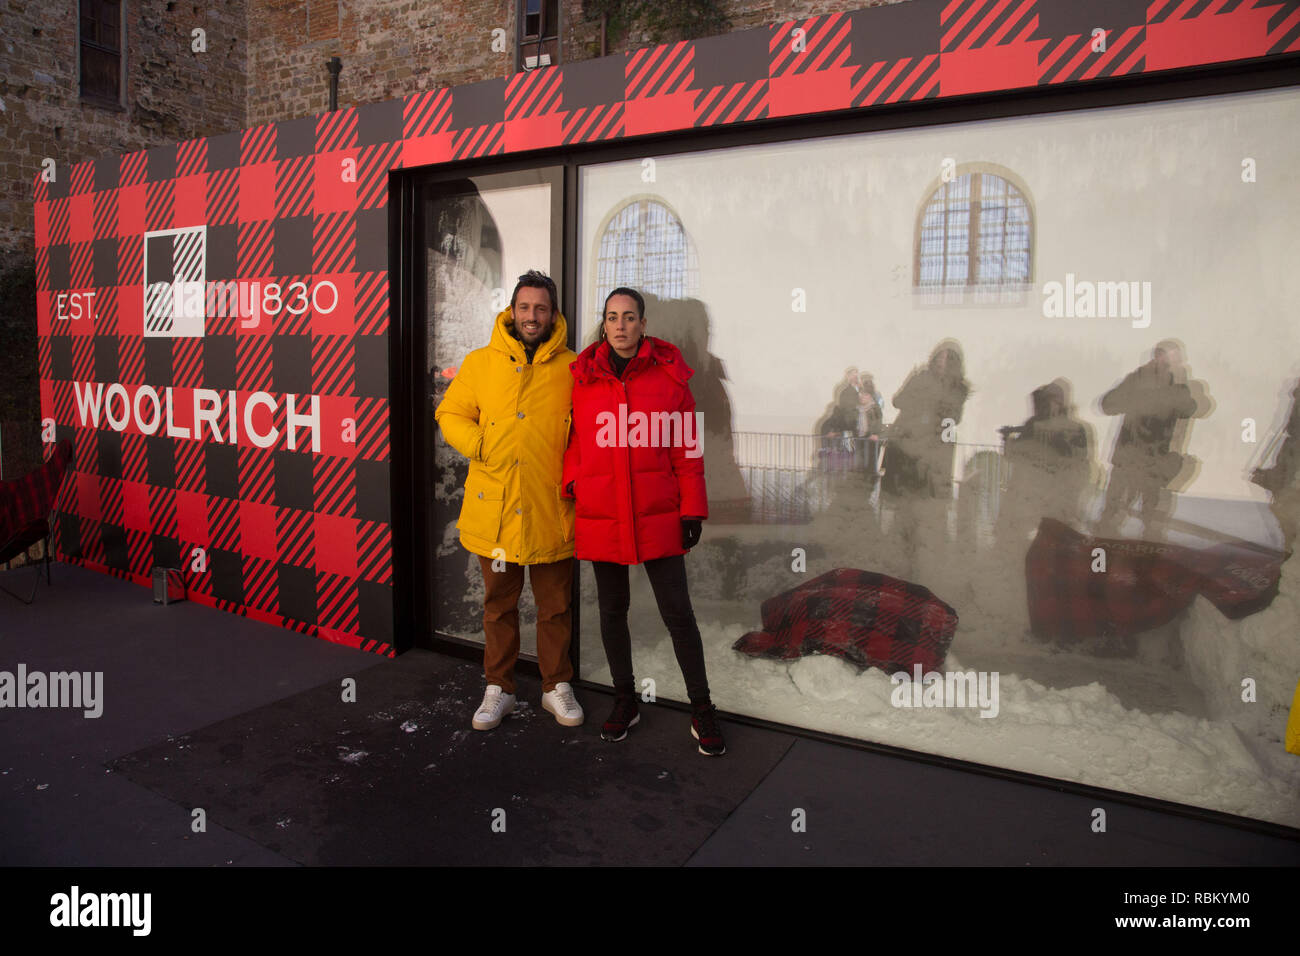 reputable site 53304 ce8c5 Woolrich Stockfotos & Woolrich Bilder - Alamy